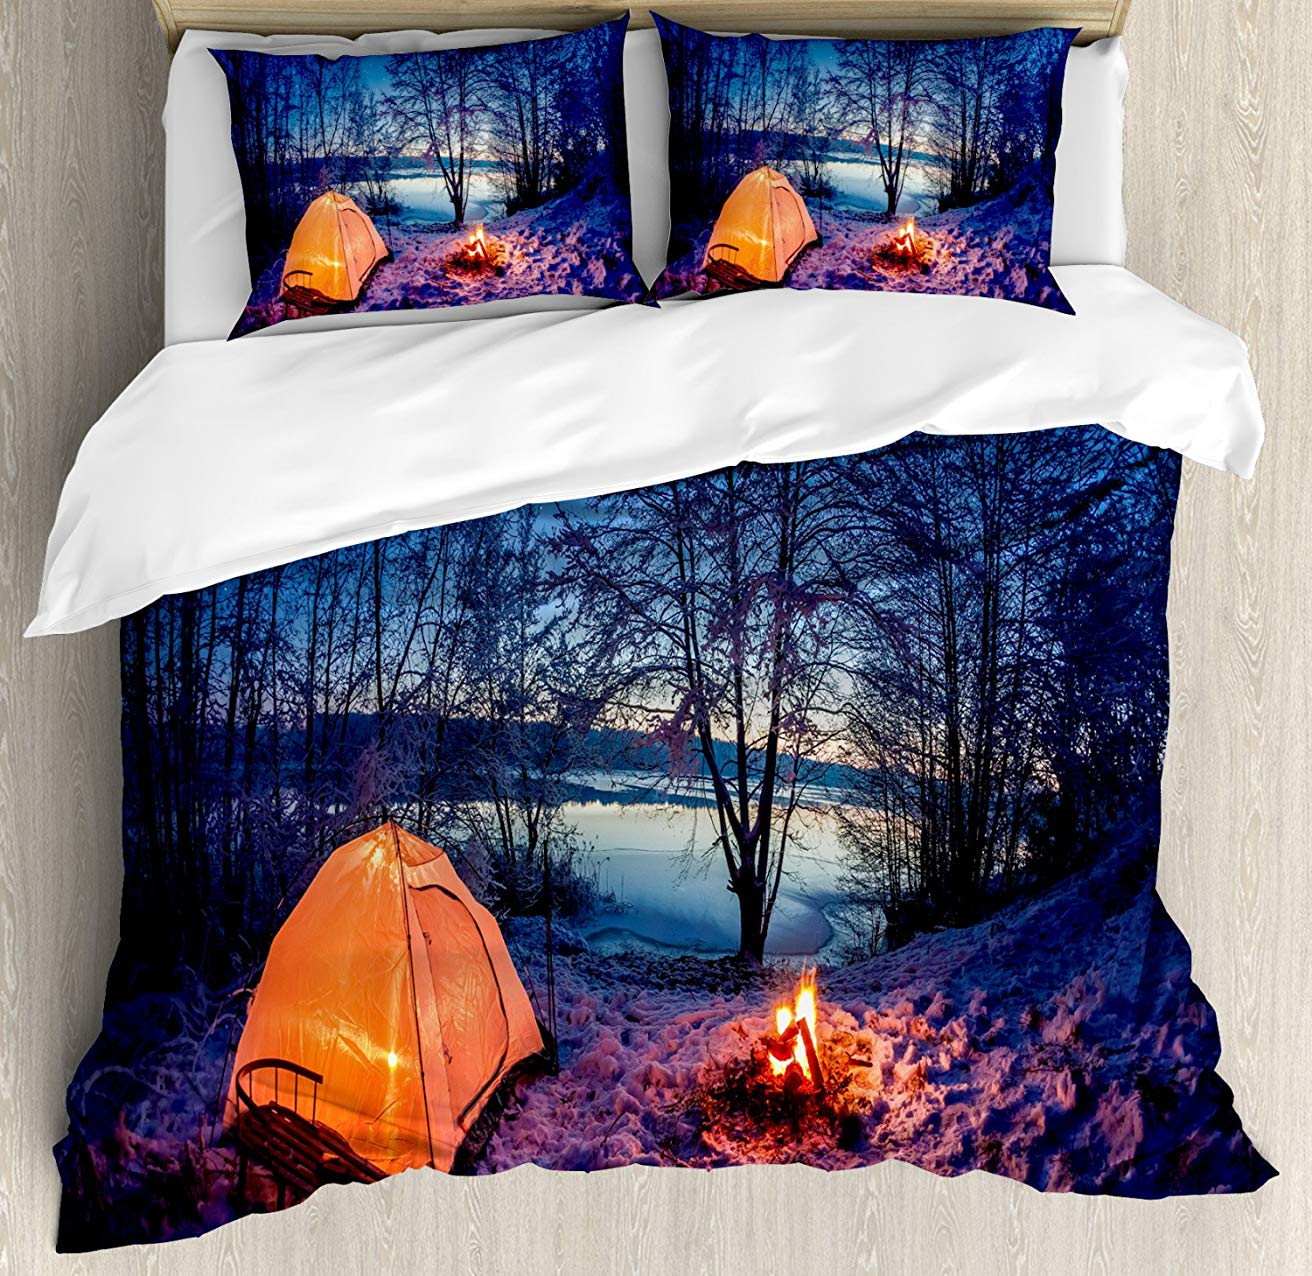 Forest Duvet Cover Set Dark Night Camping Tent Photo in the Winter on the Snow Covered Lands by the Lake 3 Piece Bedding Set